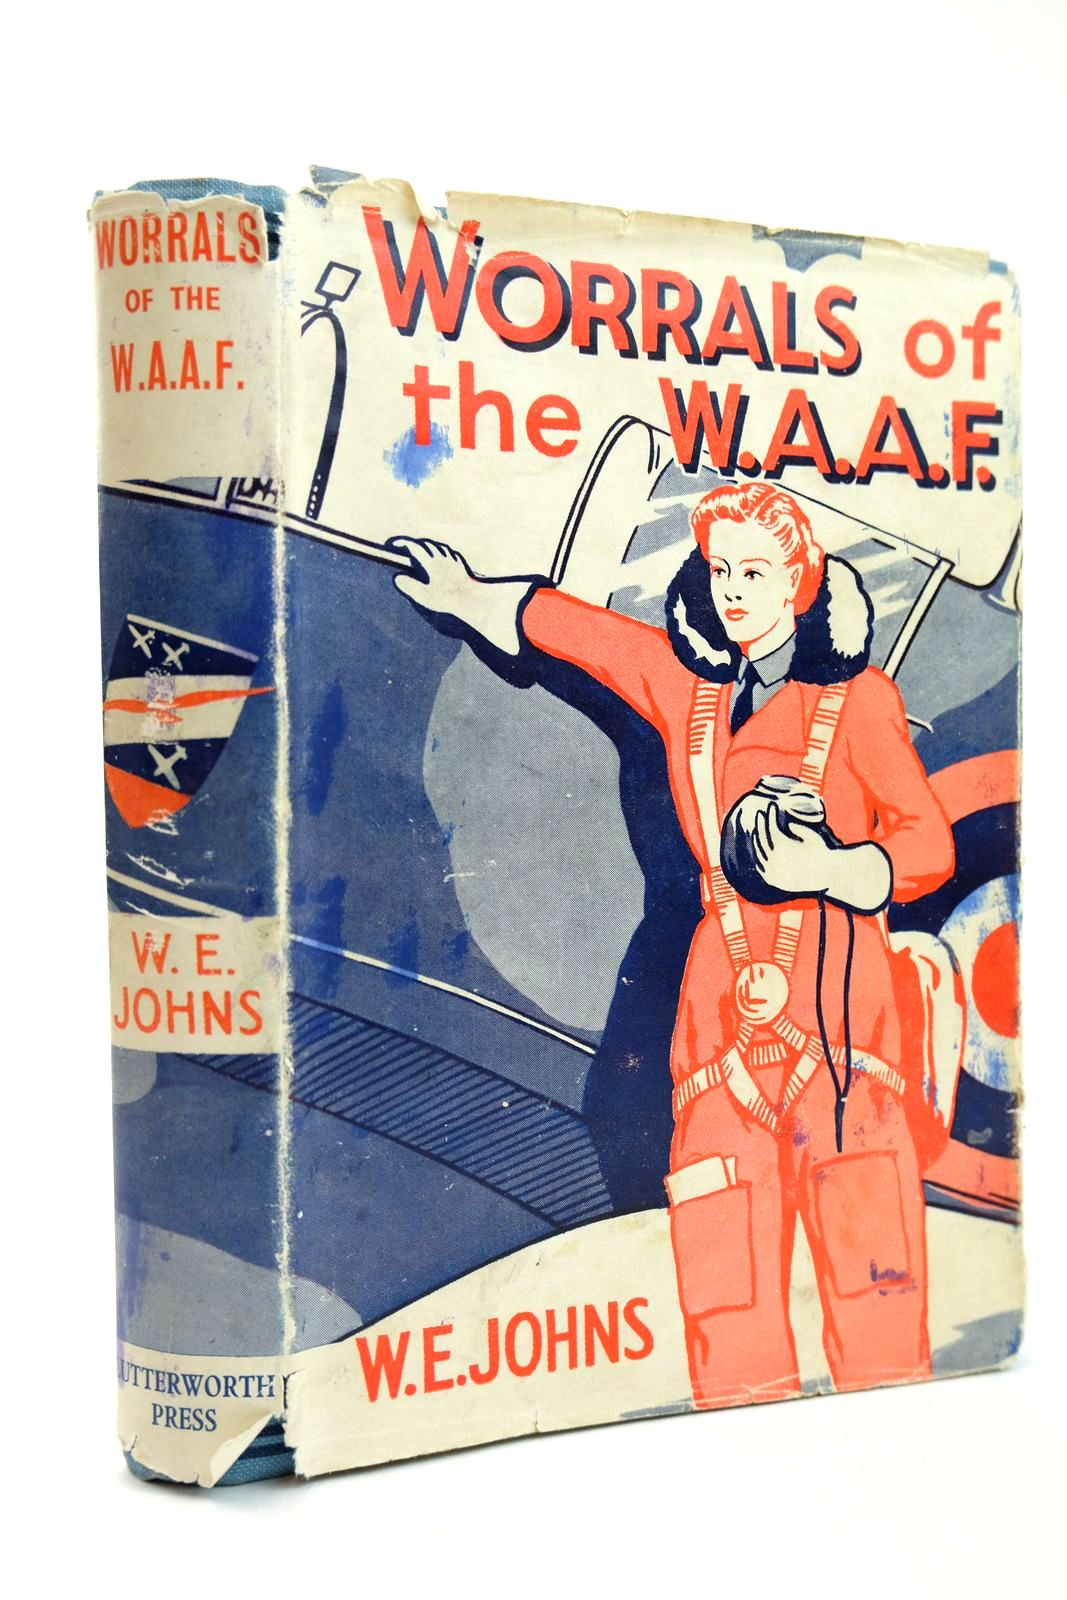 Photo of WORRALS OF THE W.A.A.F. written by Johns, W.E. published by Lutterworth Press (STOCK CODE: 2131854)  for sale by Stella & Rose's Books